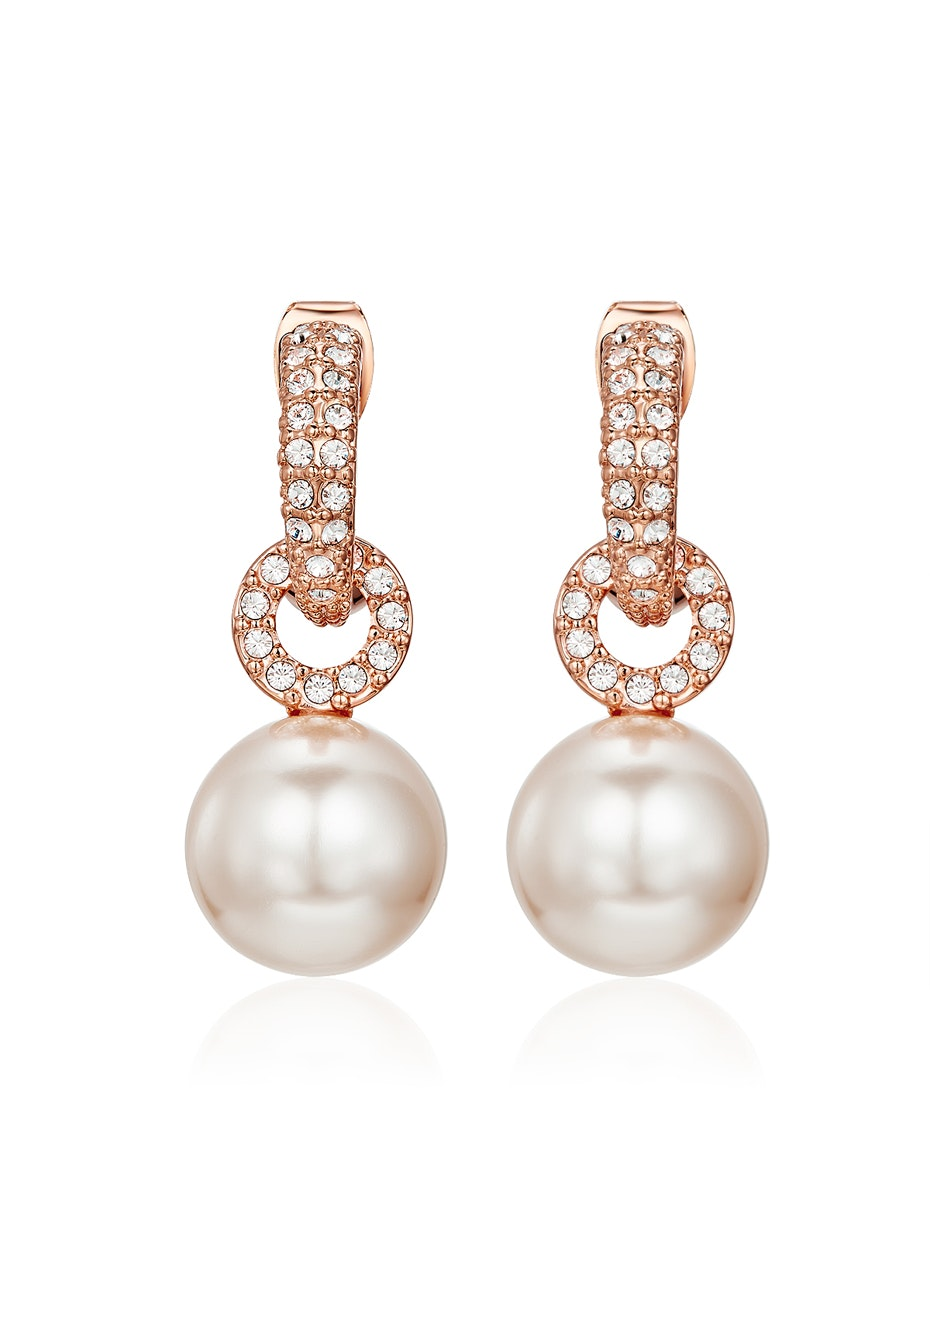 Pearl Drop Earrings Embellished with Crystals from Swarovski -Rose Gold